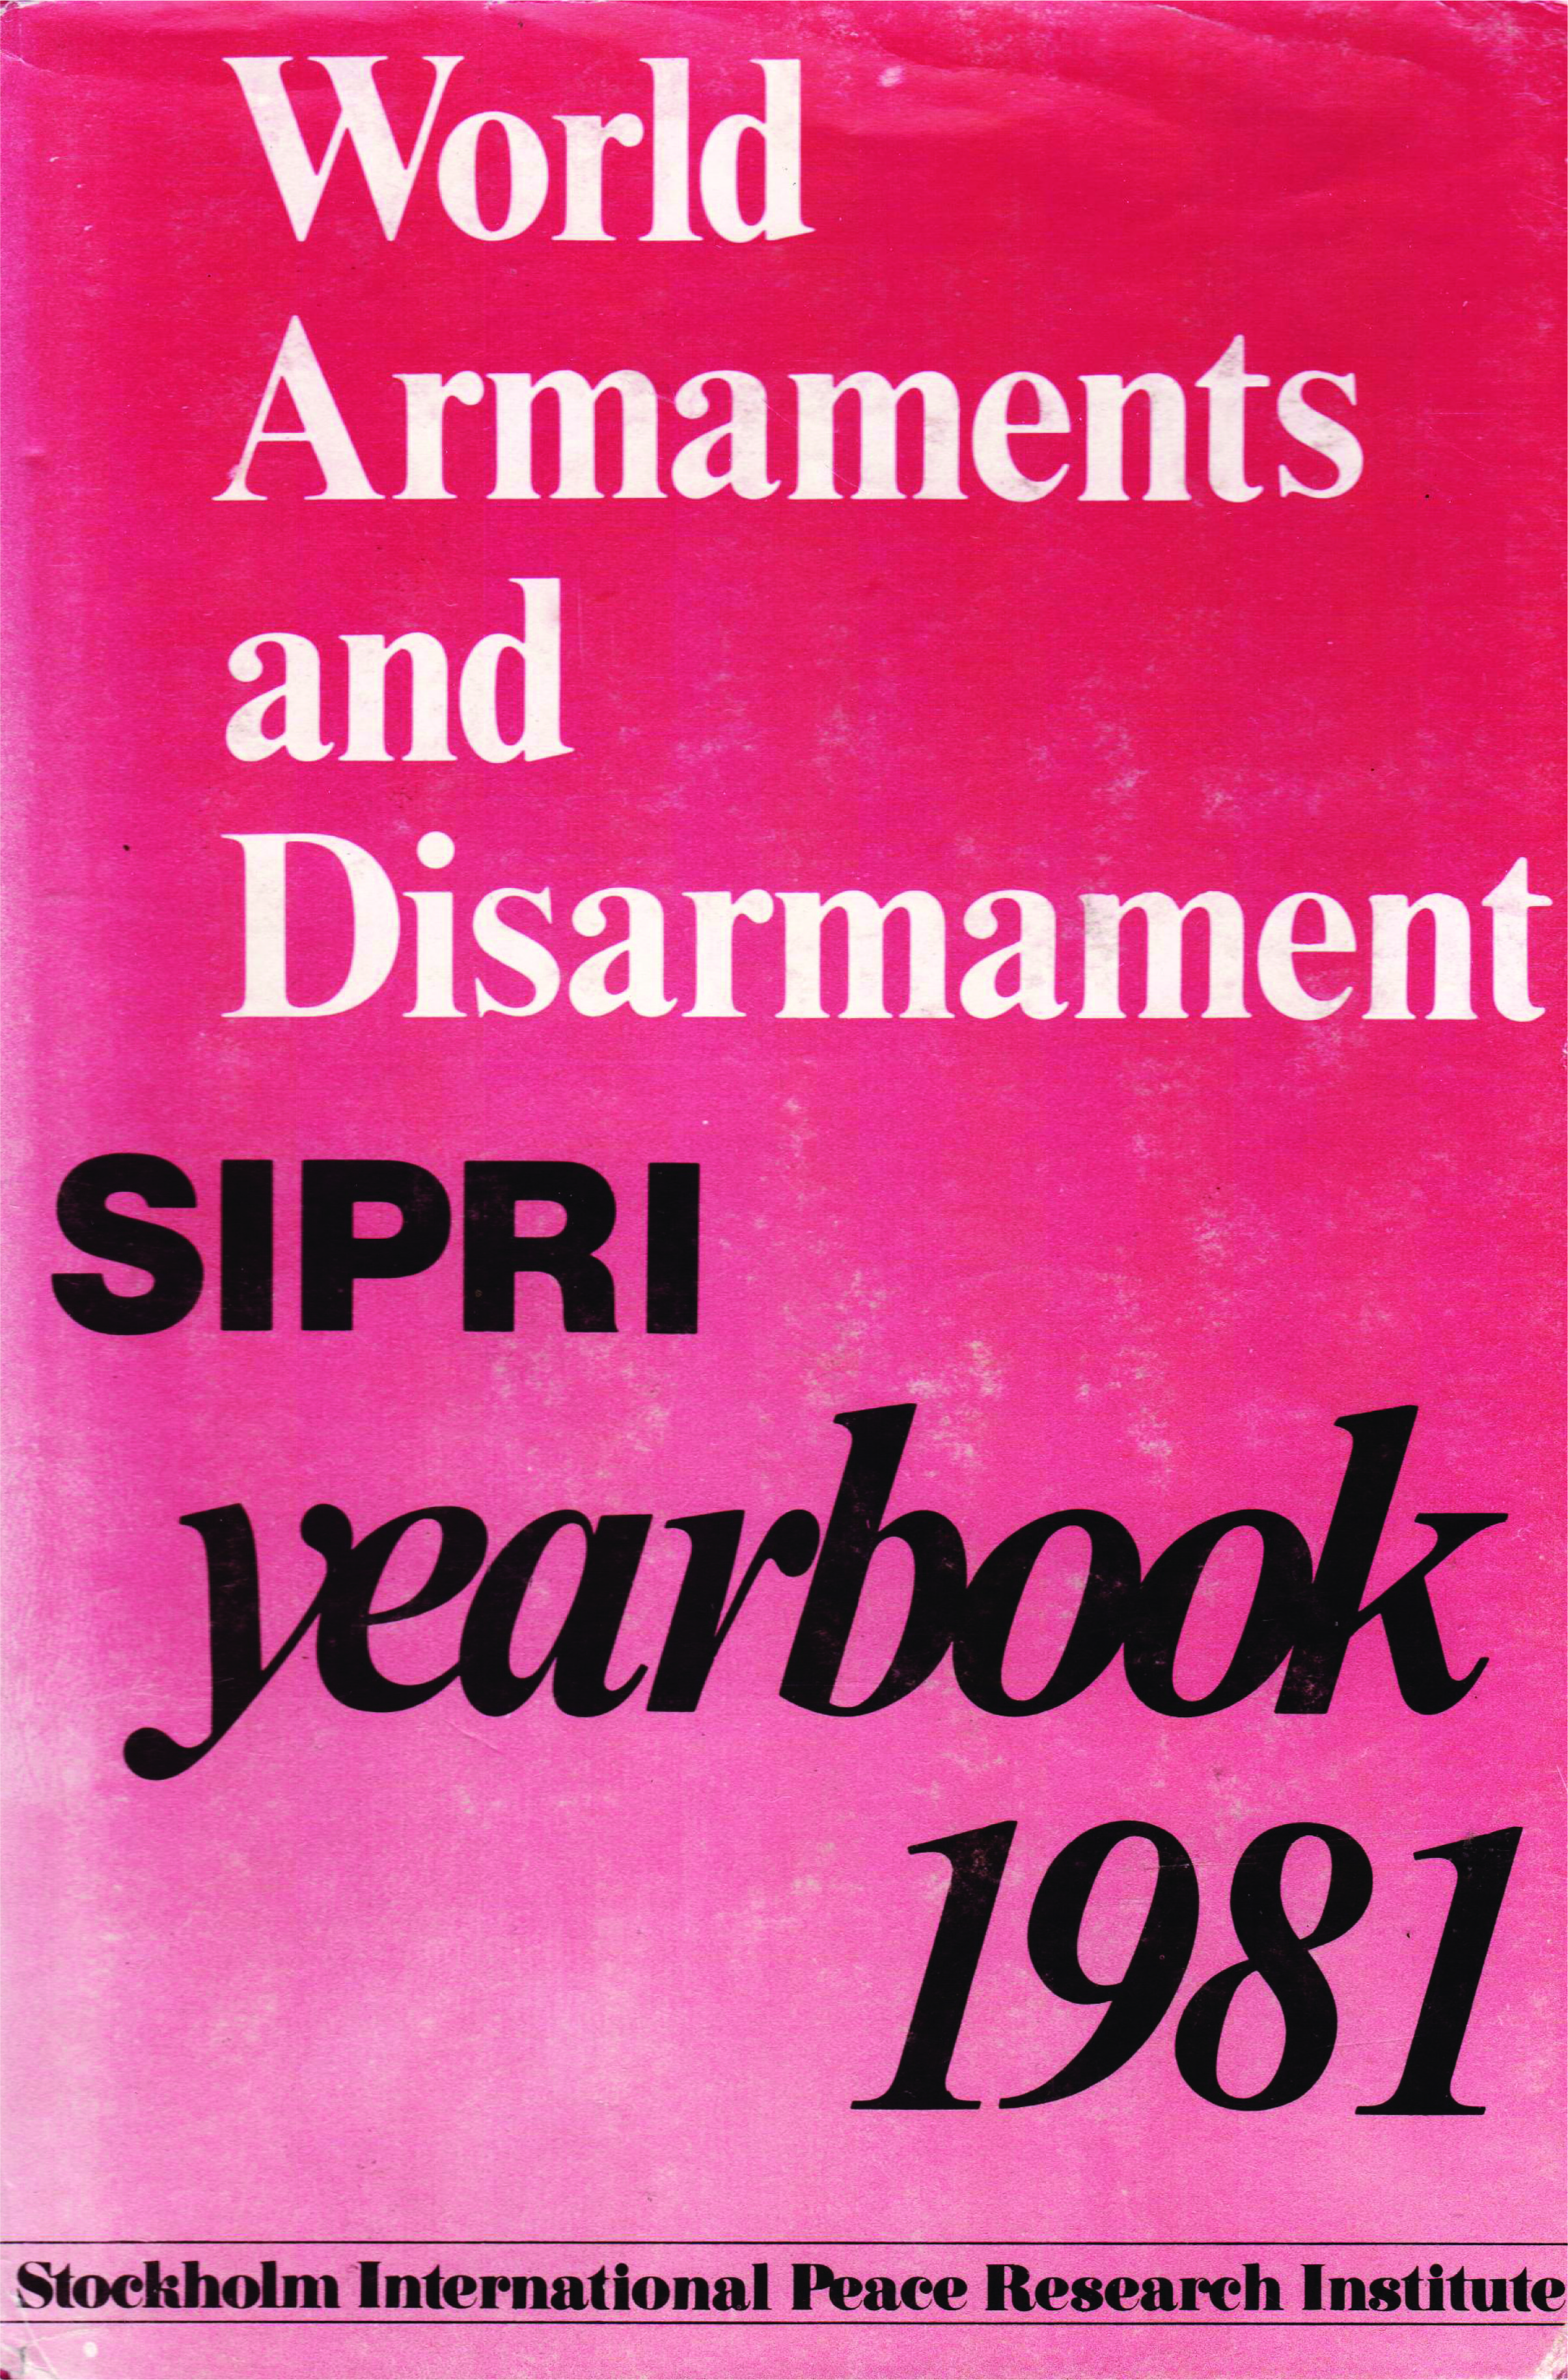 SIPRI yearbook 1981 cover